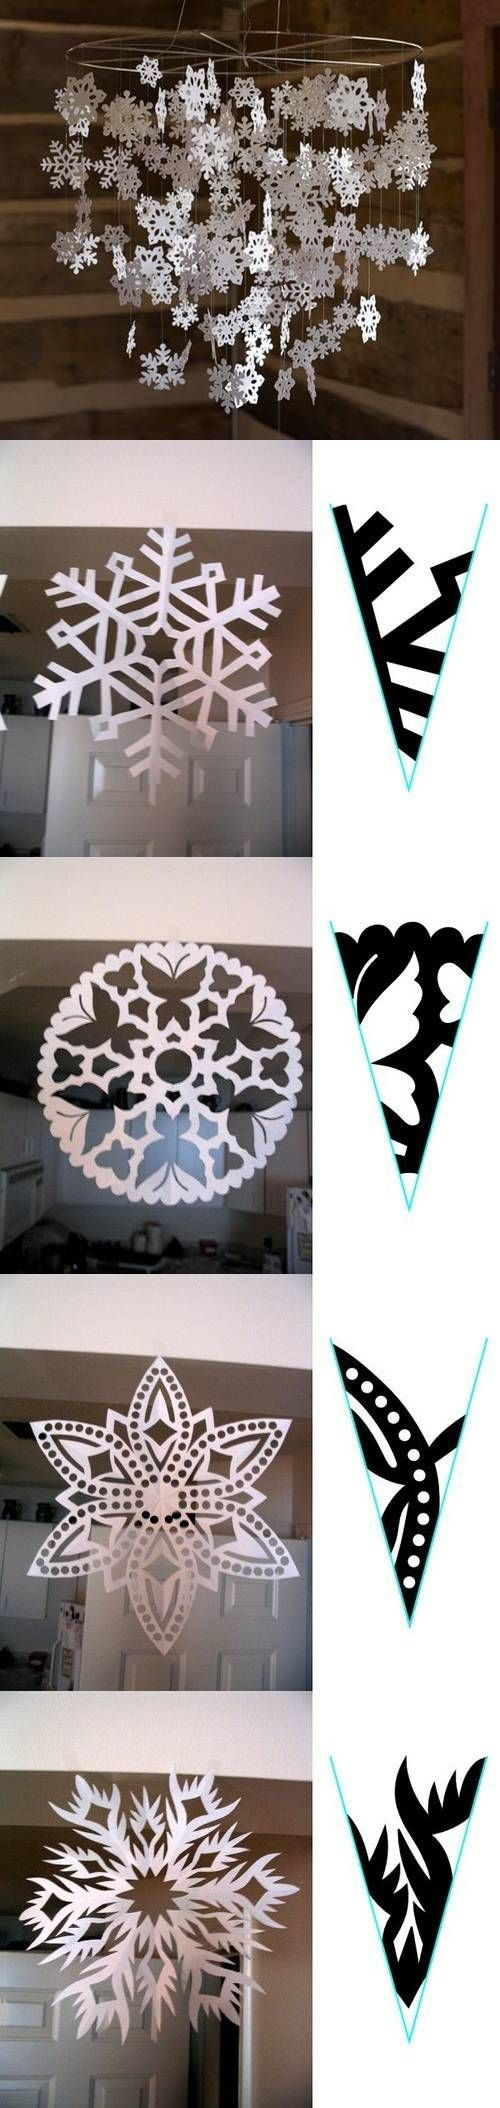 make paper snowflakes with your guests